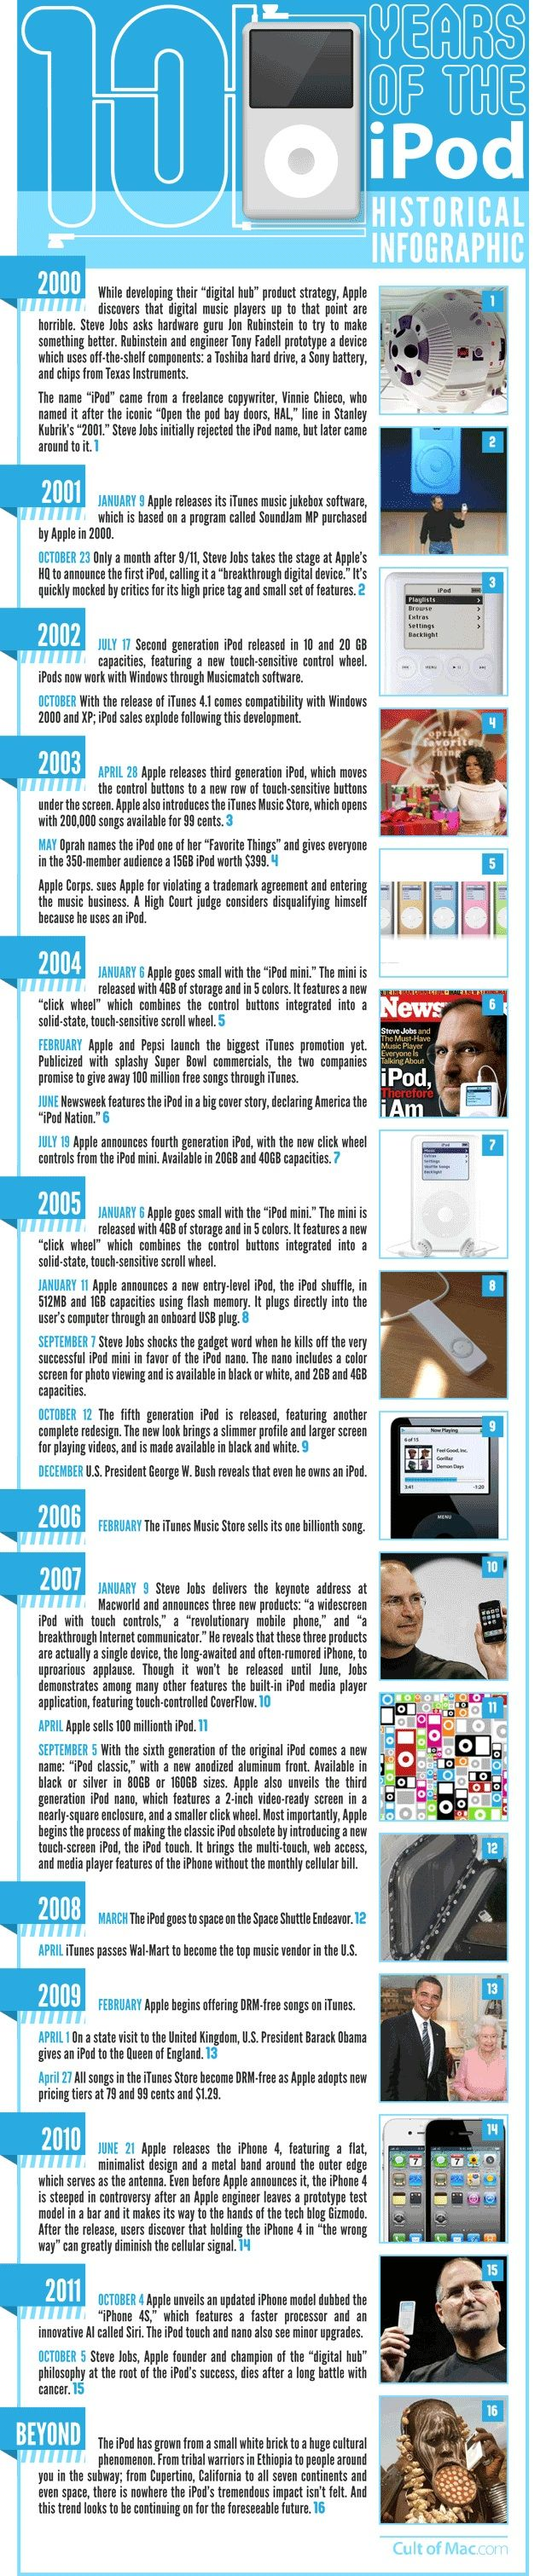 Infographic: A Brief History of The iPod (by Leander Kahney in  CultOfMac Oct 2011) [640px × 3,022px] Ever wondered how the iPod became so ubiquitous? Where it came from? How Apple kept all competitors at bay, and made the iPod the key music technology of the 21st century?    We've got you covered in this cool infographic of the history of the iPod.